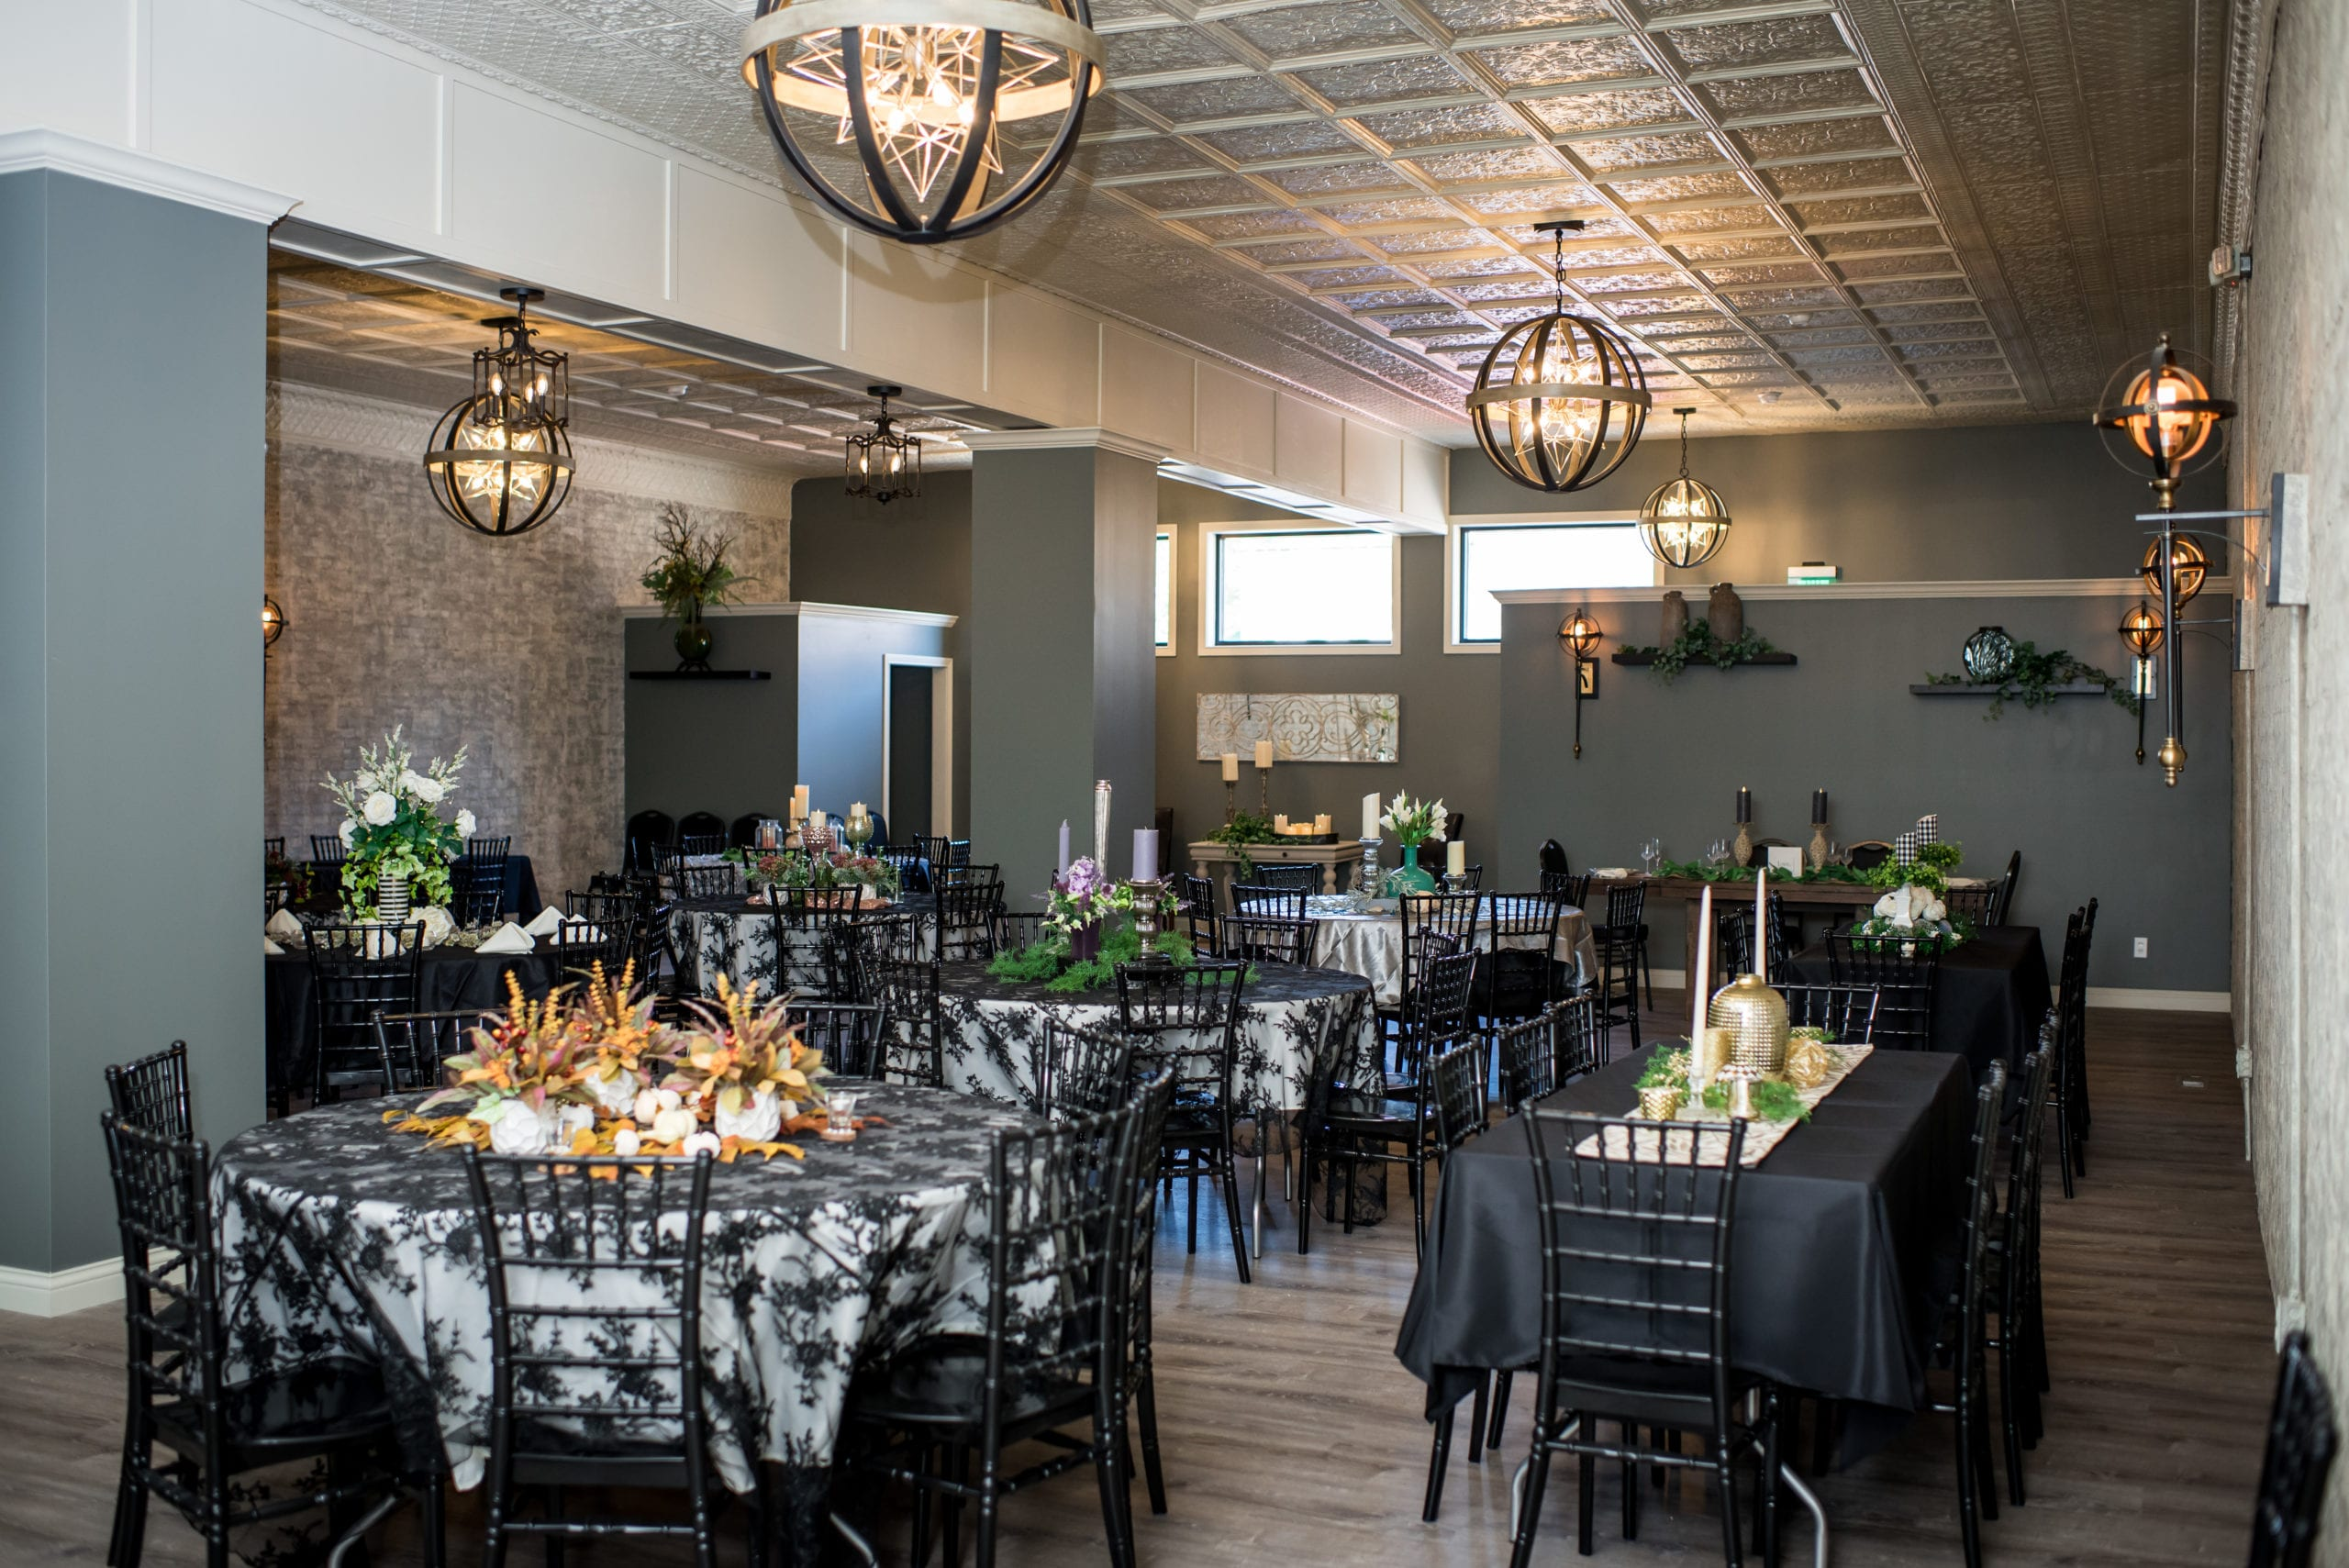 host your bridal party in our quaint event center space